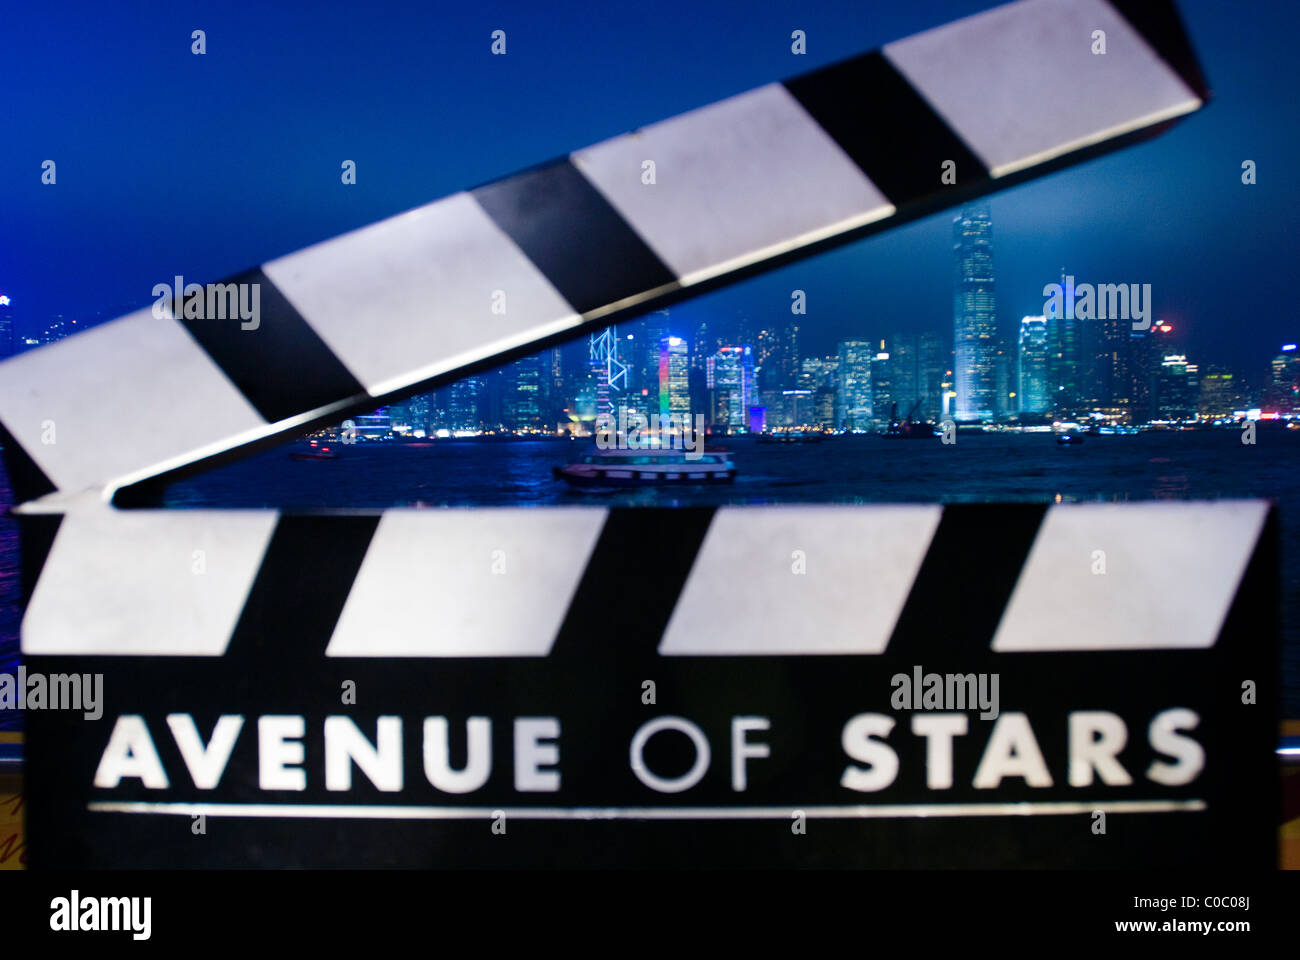 Clack board on Avenue of Stars in Hong Kong with the Sky Scrapers in the background - Stock Image